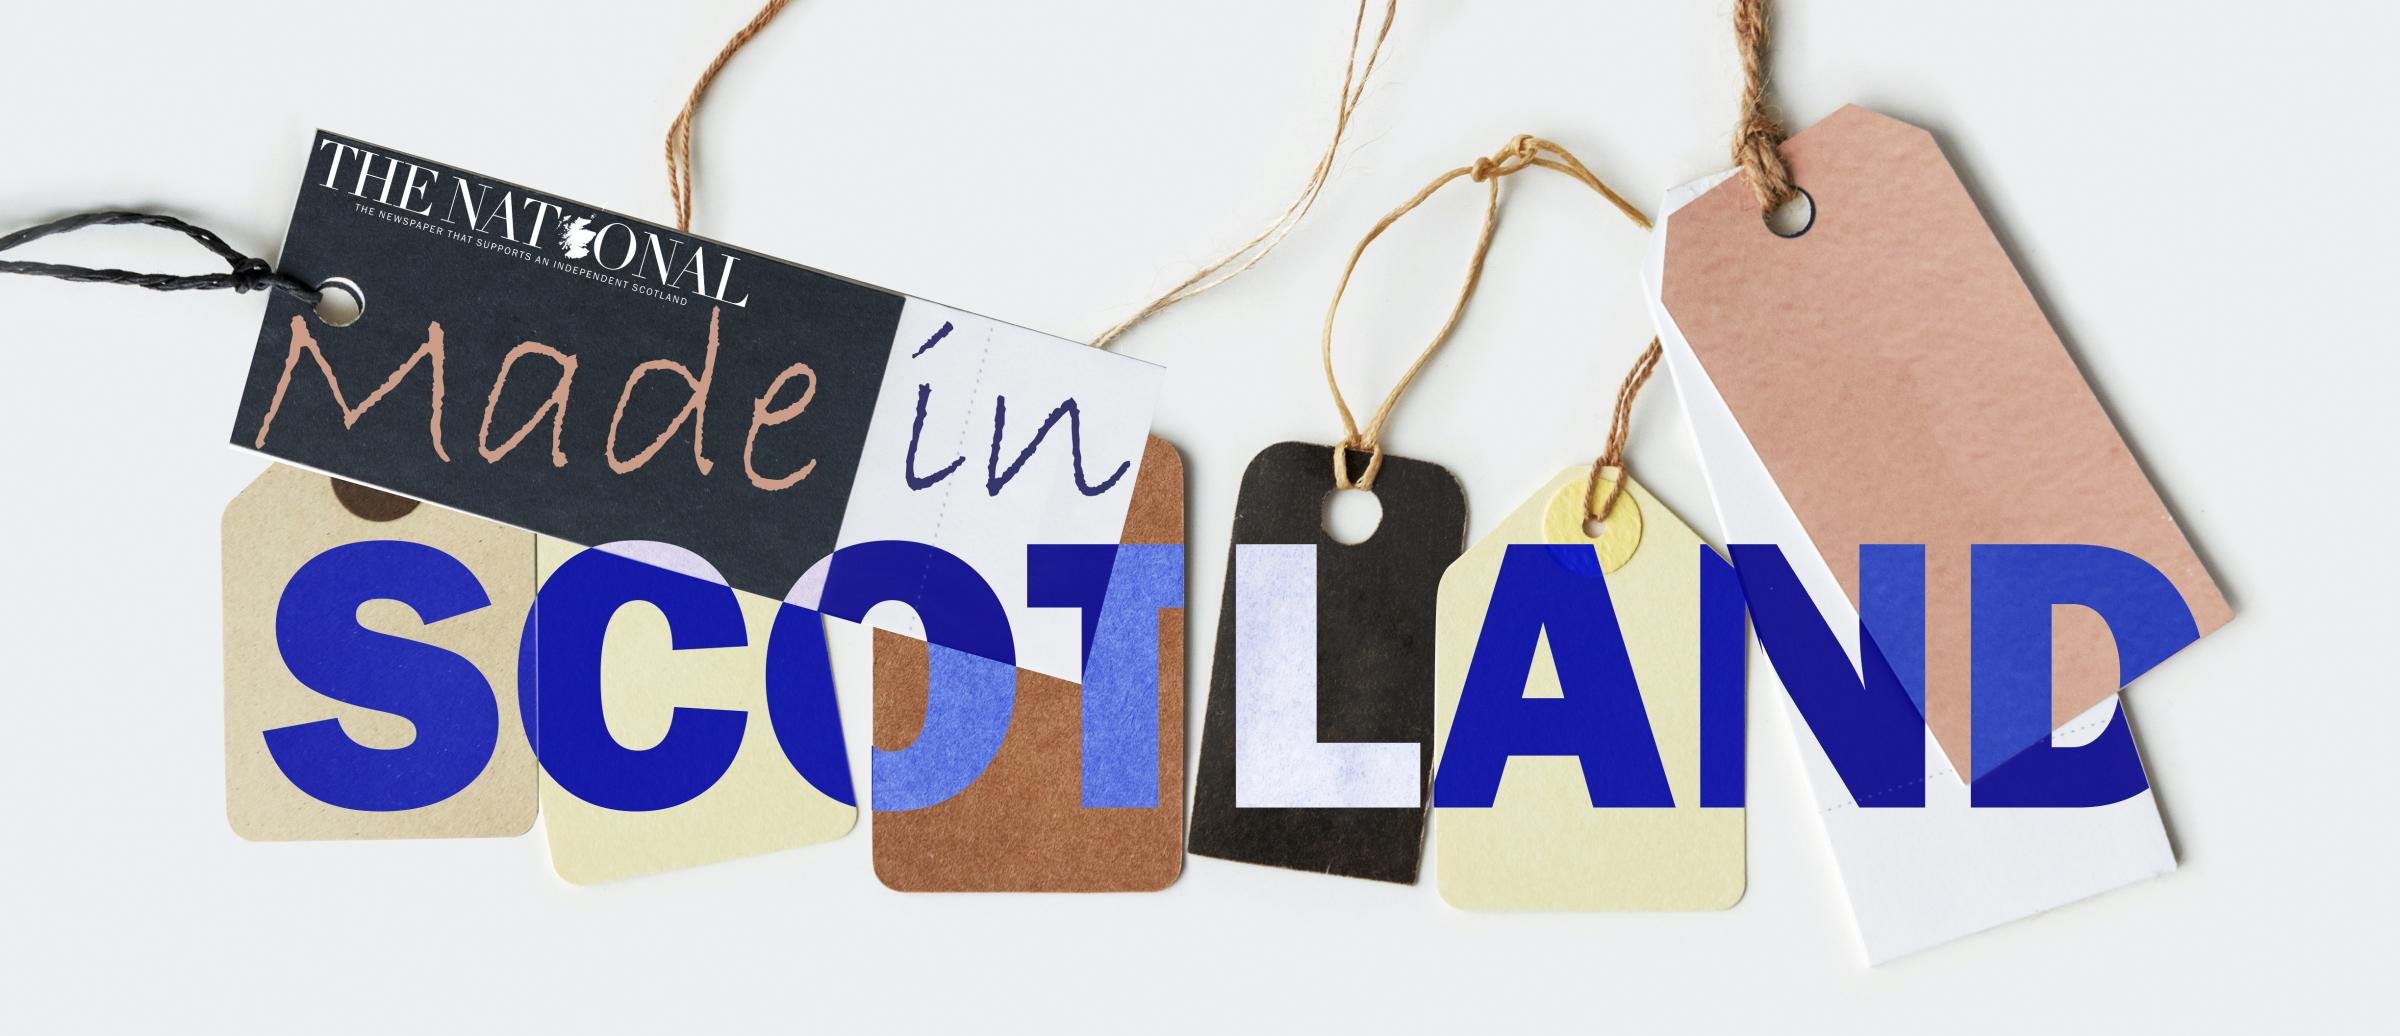 Our new monthly round-up of gift ideas from Scottish firms and independent makers ... without a Union flag in sight!